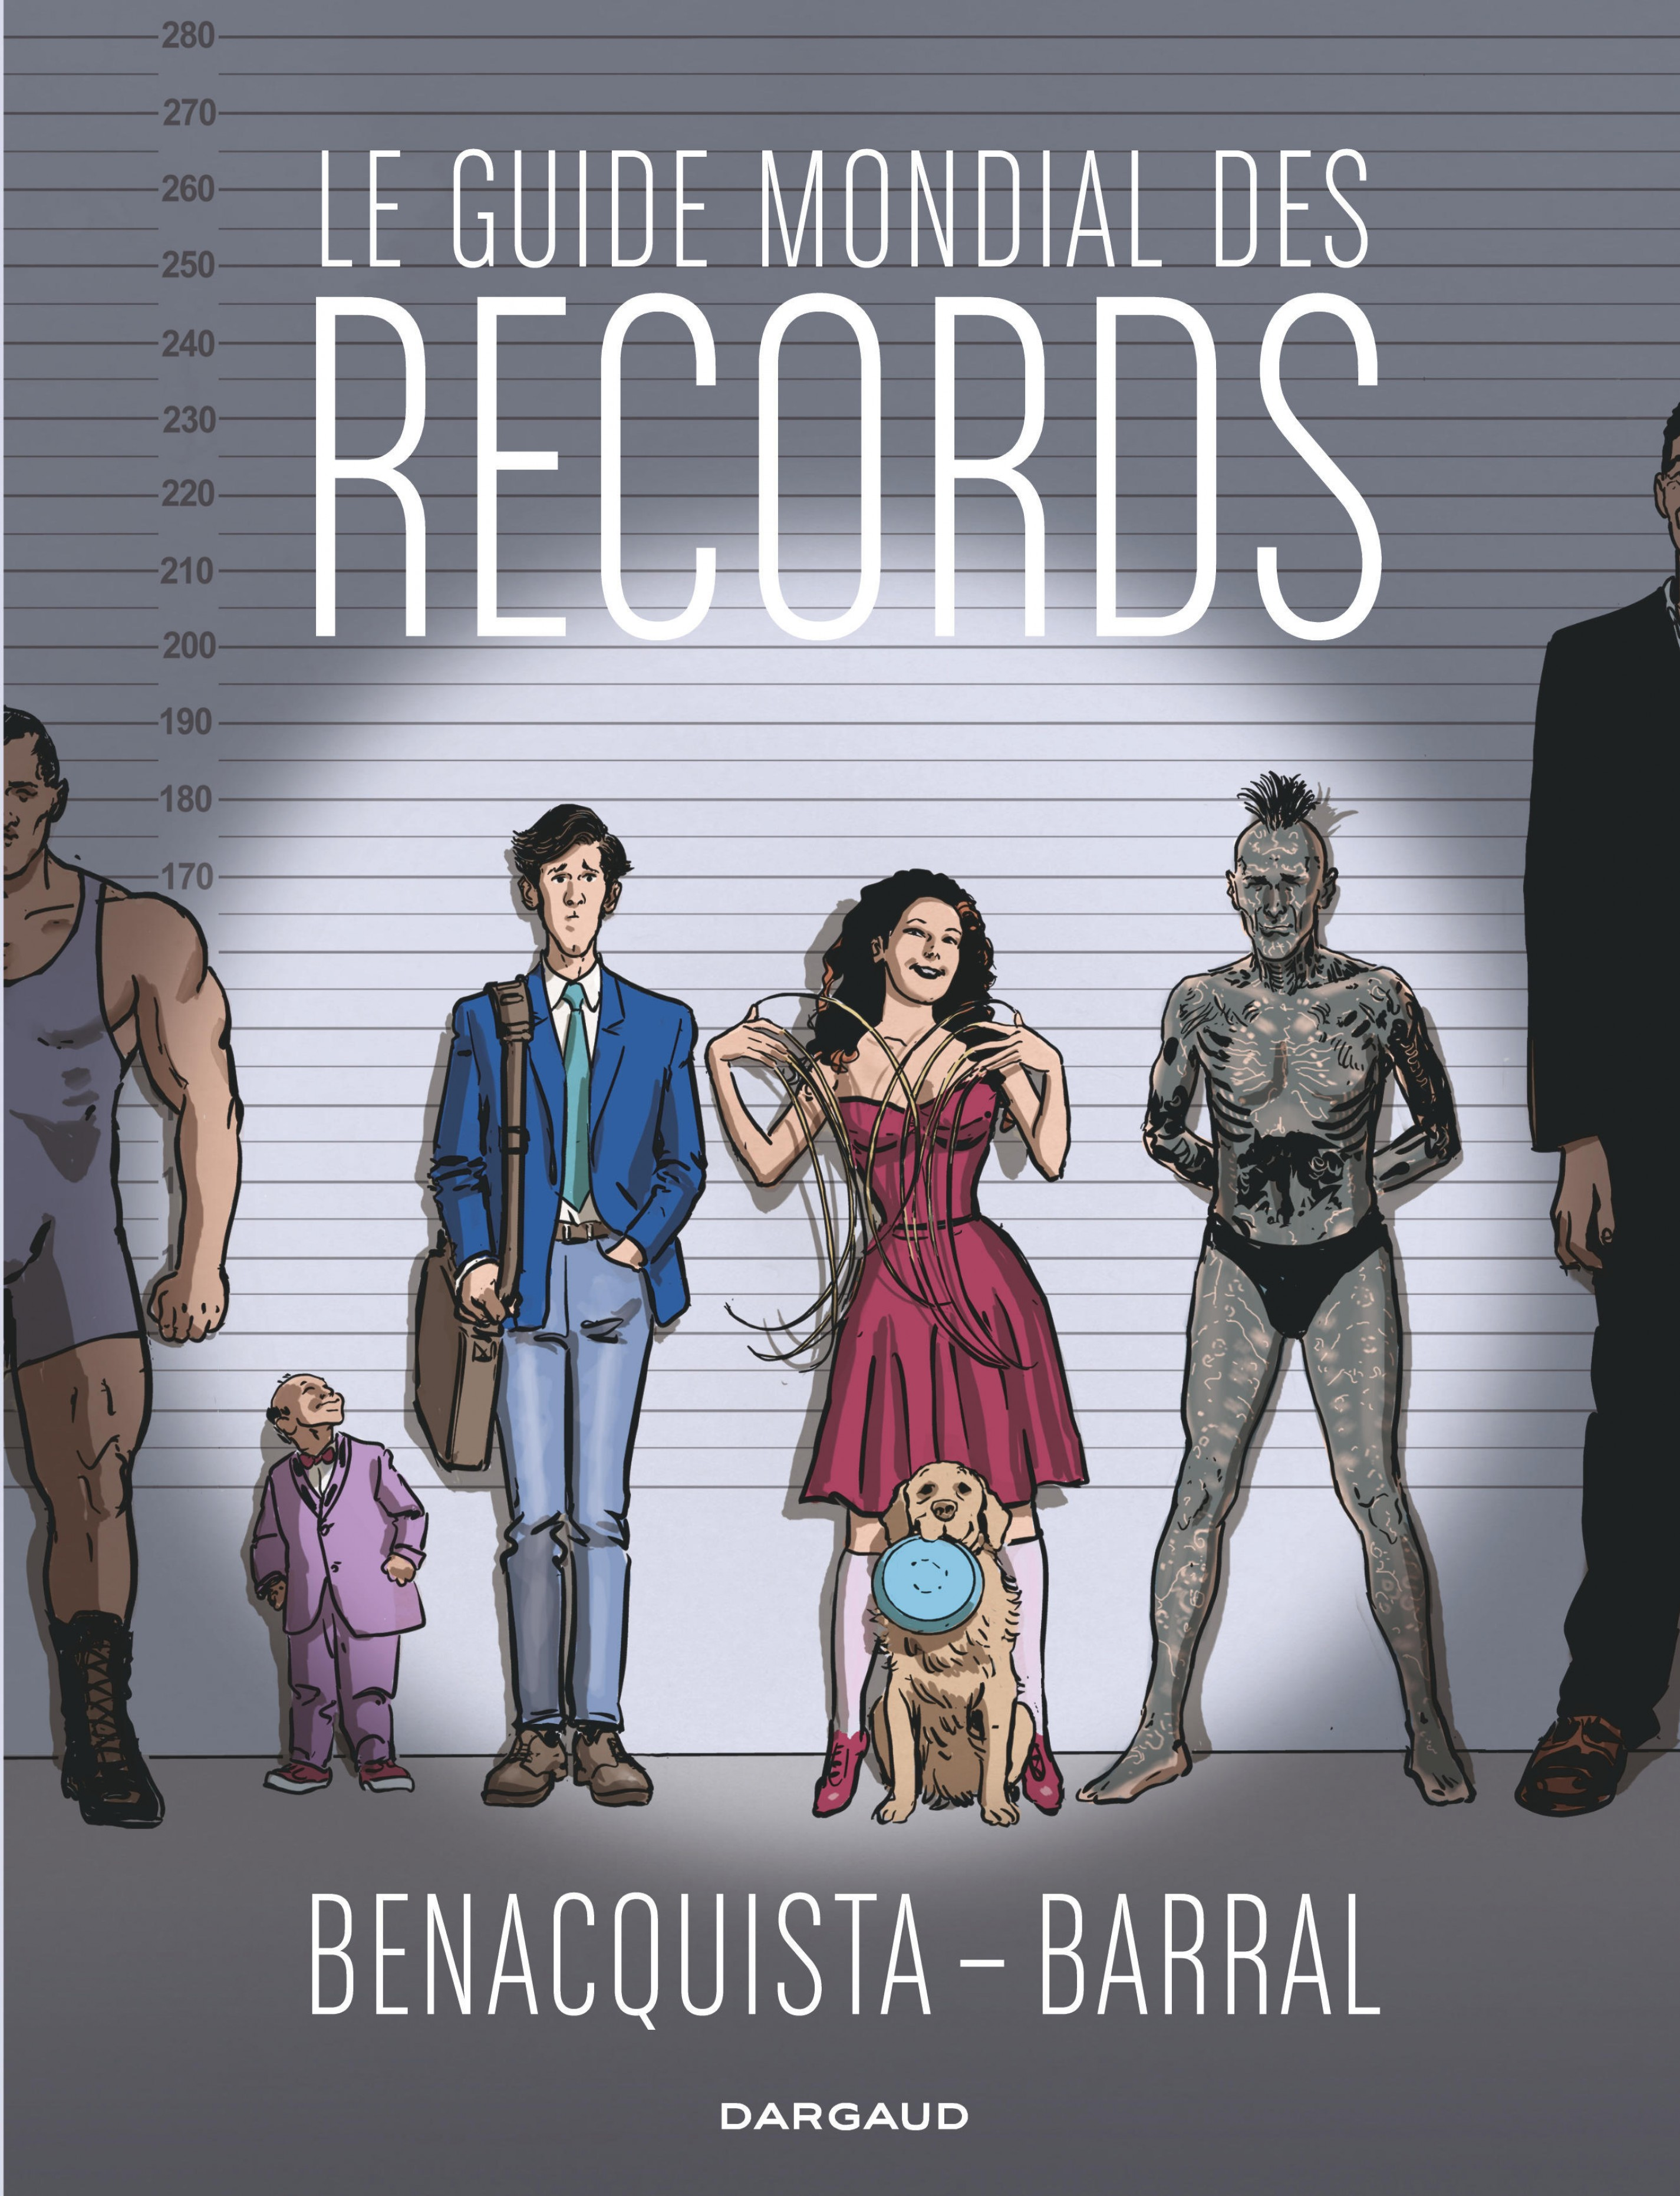 Le guide mondial des records, Nicolas Barral